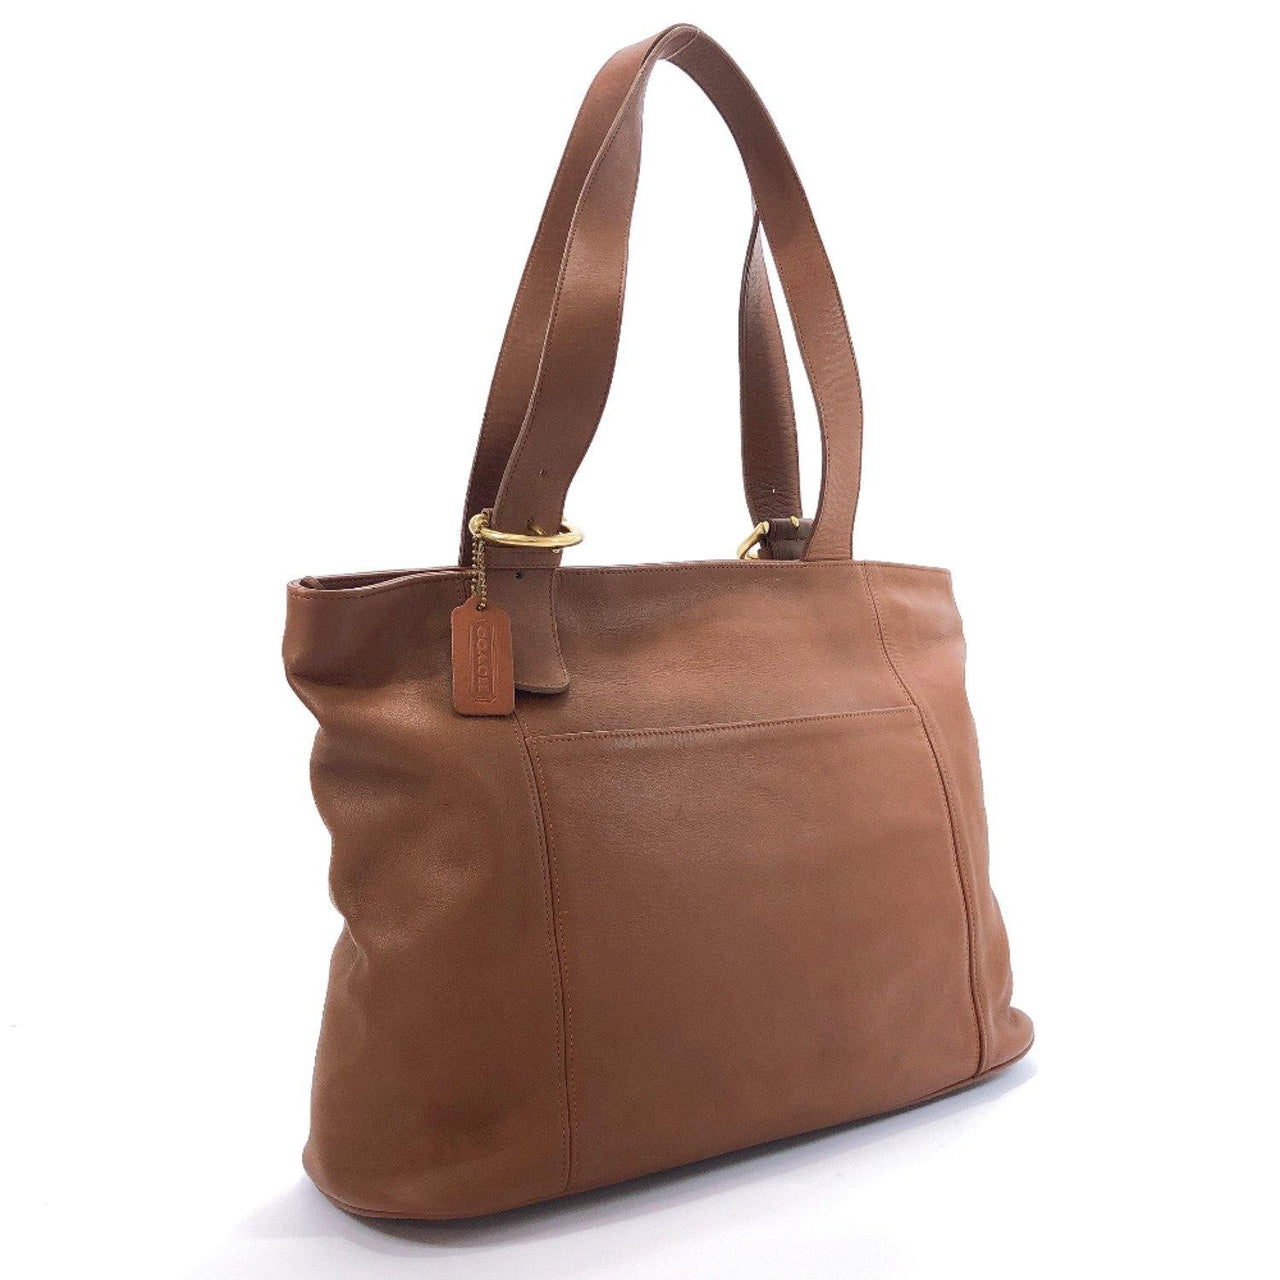 COACH Tote Bag 4155 Old coach Grain leather Brown Women Used